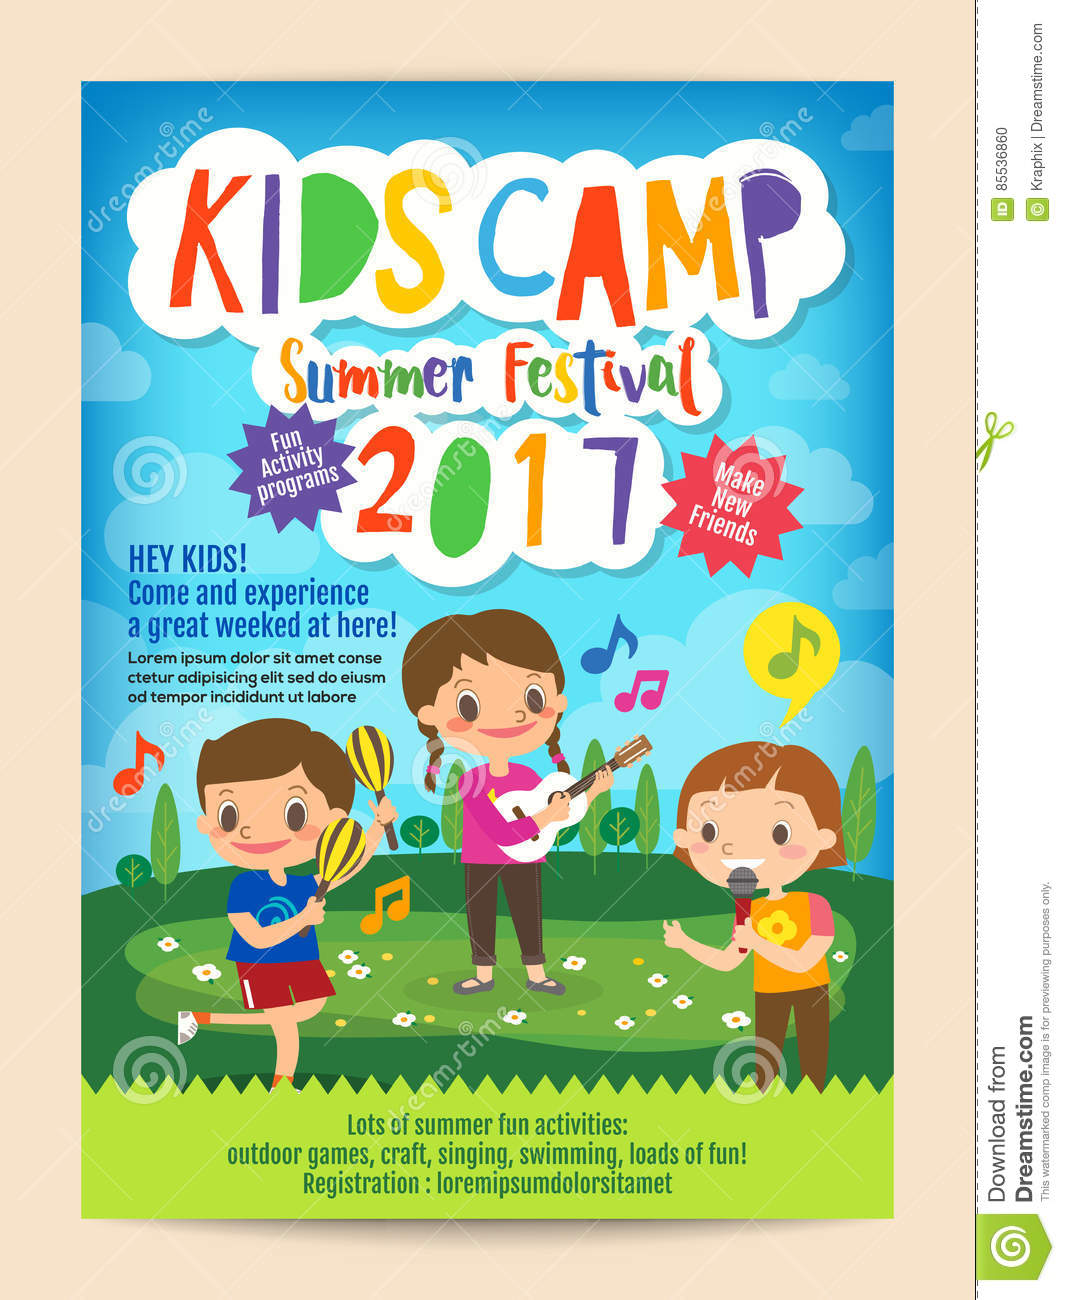 Kids Summer Camp Education Poster Flyer Stock Vector - Image: 85536860